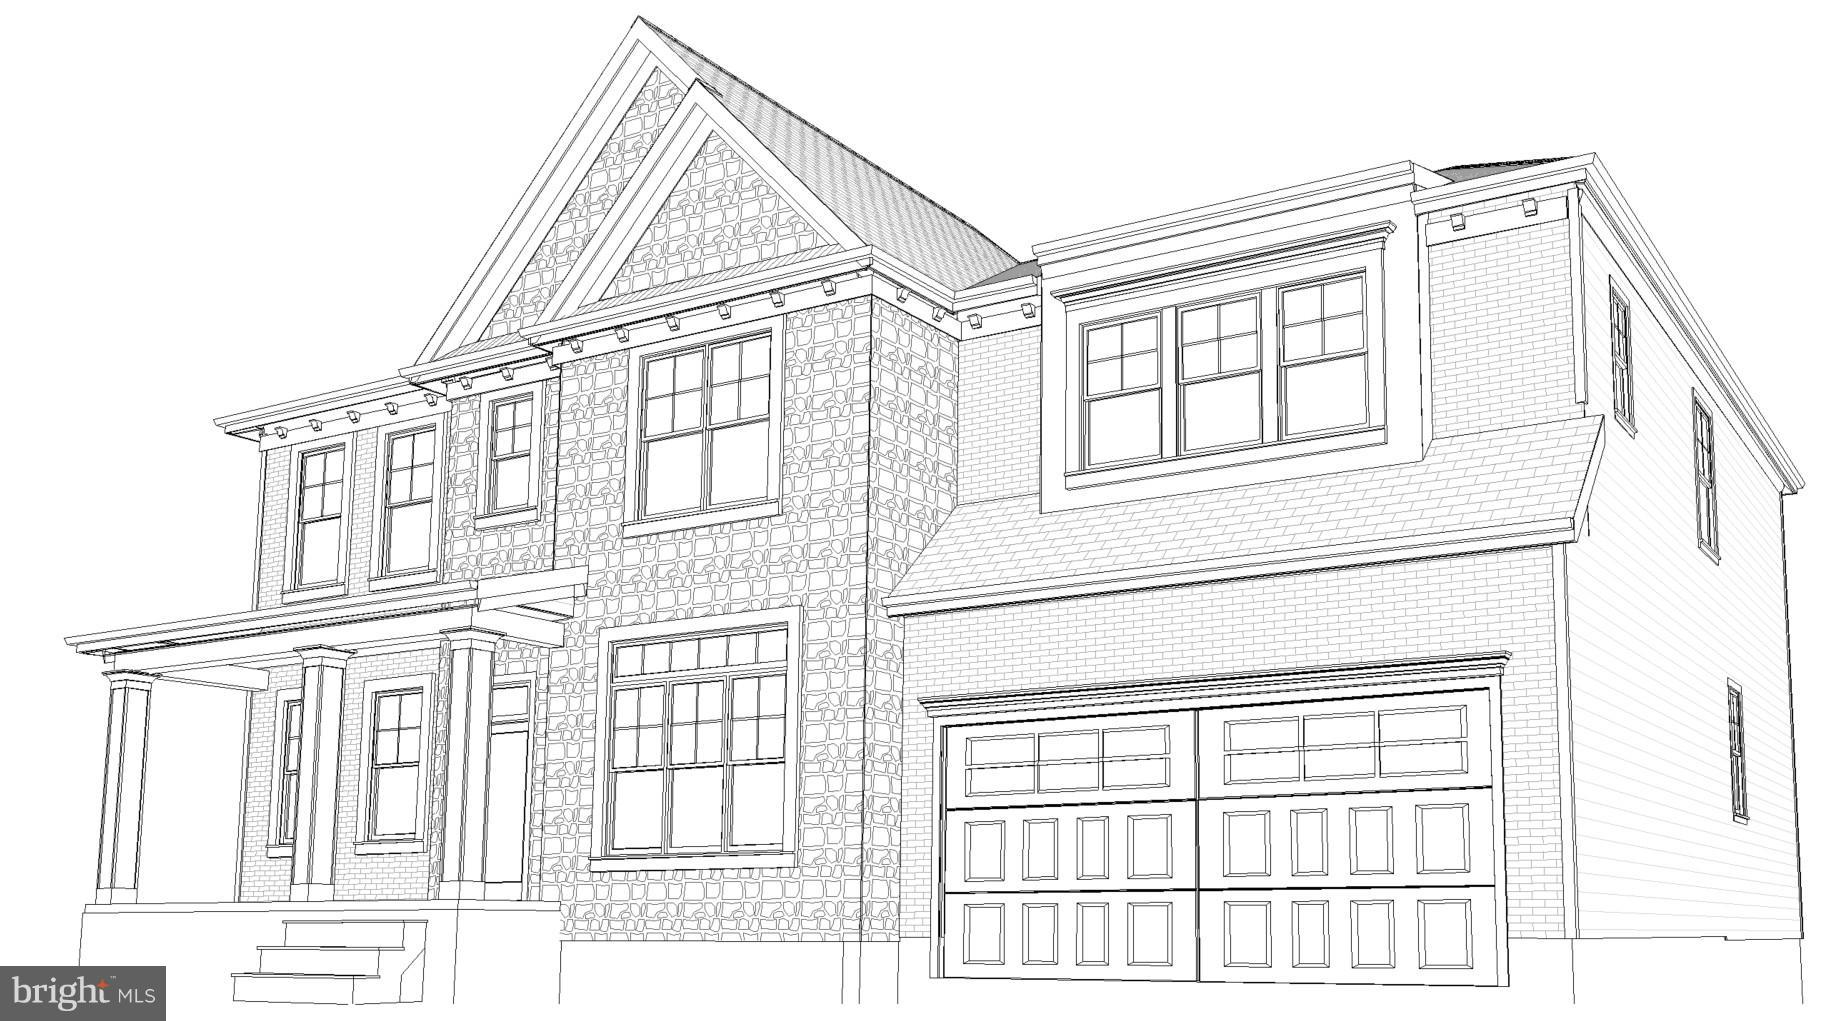 To-be-built! OFF SITE model open SATURDAY & SUNDAY @ 7015 Haycock Rd, Falls Church, VA 22043! 4 new homes community. 2019 delivery. 6+ floor plans available. Gallery kitchen, granite counter, stainless Appliances. Hardwood floor.  Full custom luxury builder. Open floor plan. Each bedroom has own walk-in closet. Designer paint and finish. Optional finished Basement, Deck, Balcony, and more upgrades options available. Lowest price new built in Fairfax.